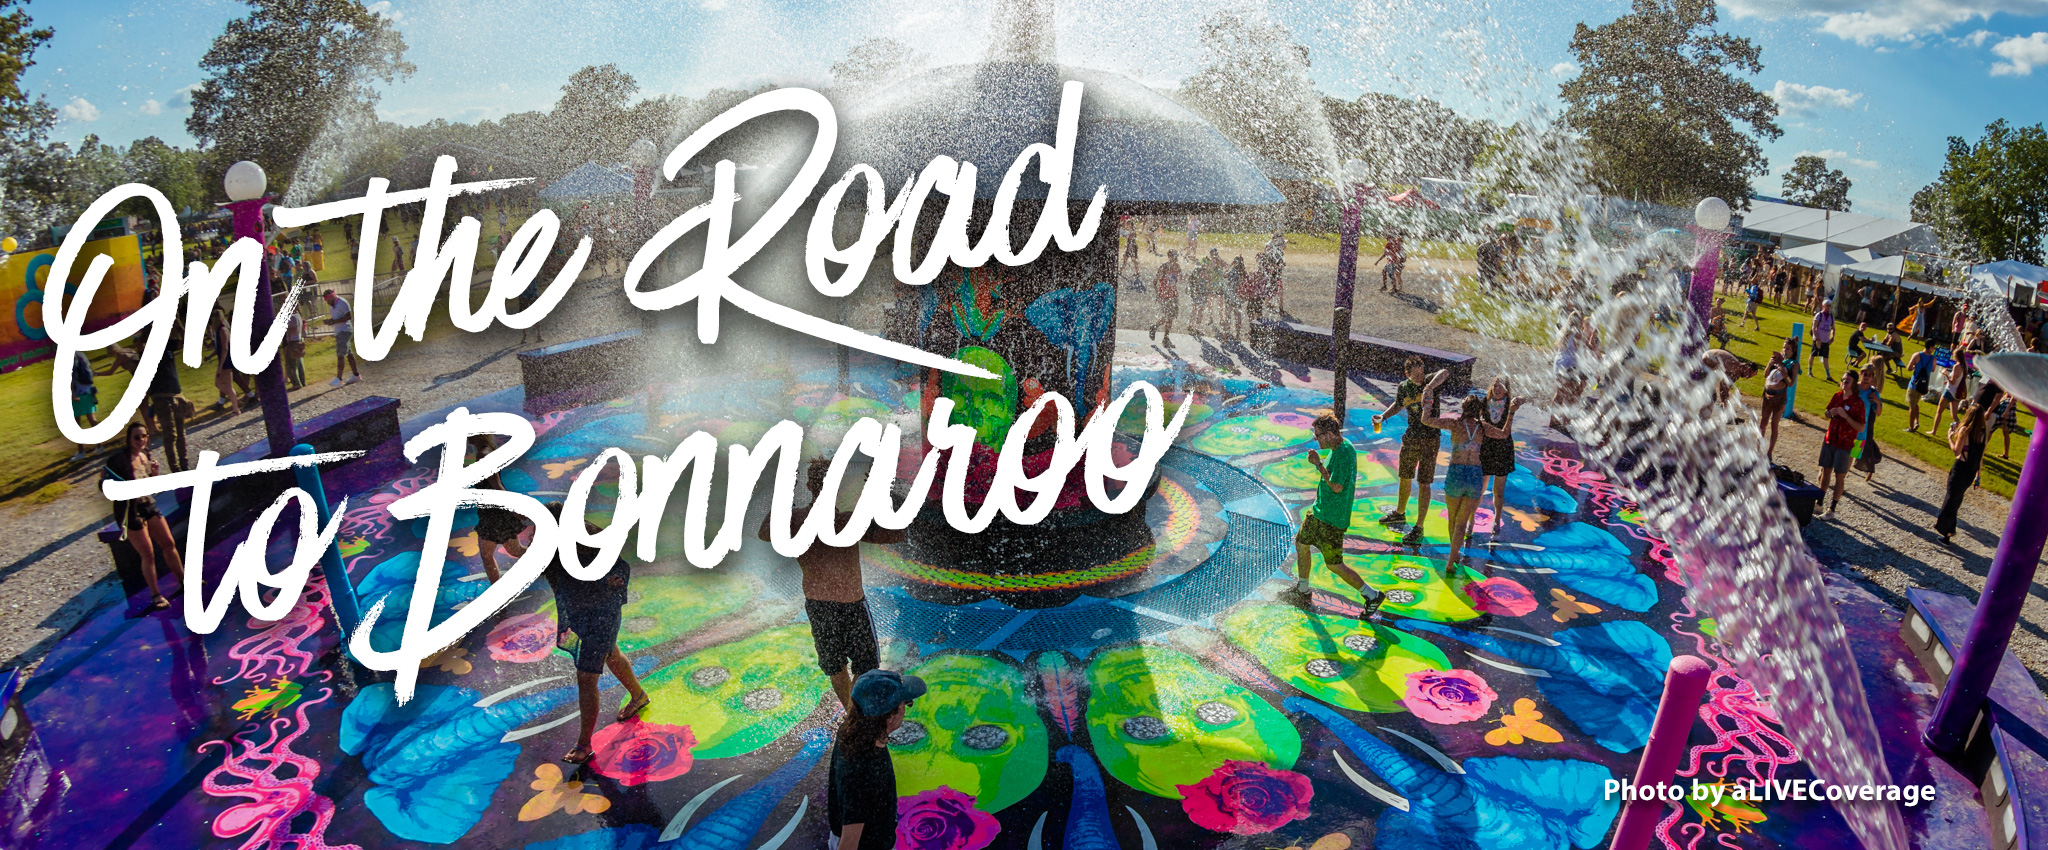 Things to Do On the Road to Bonnaroo